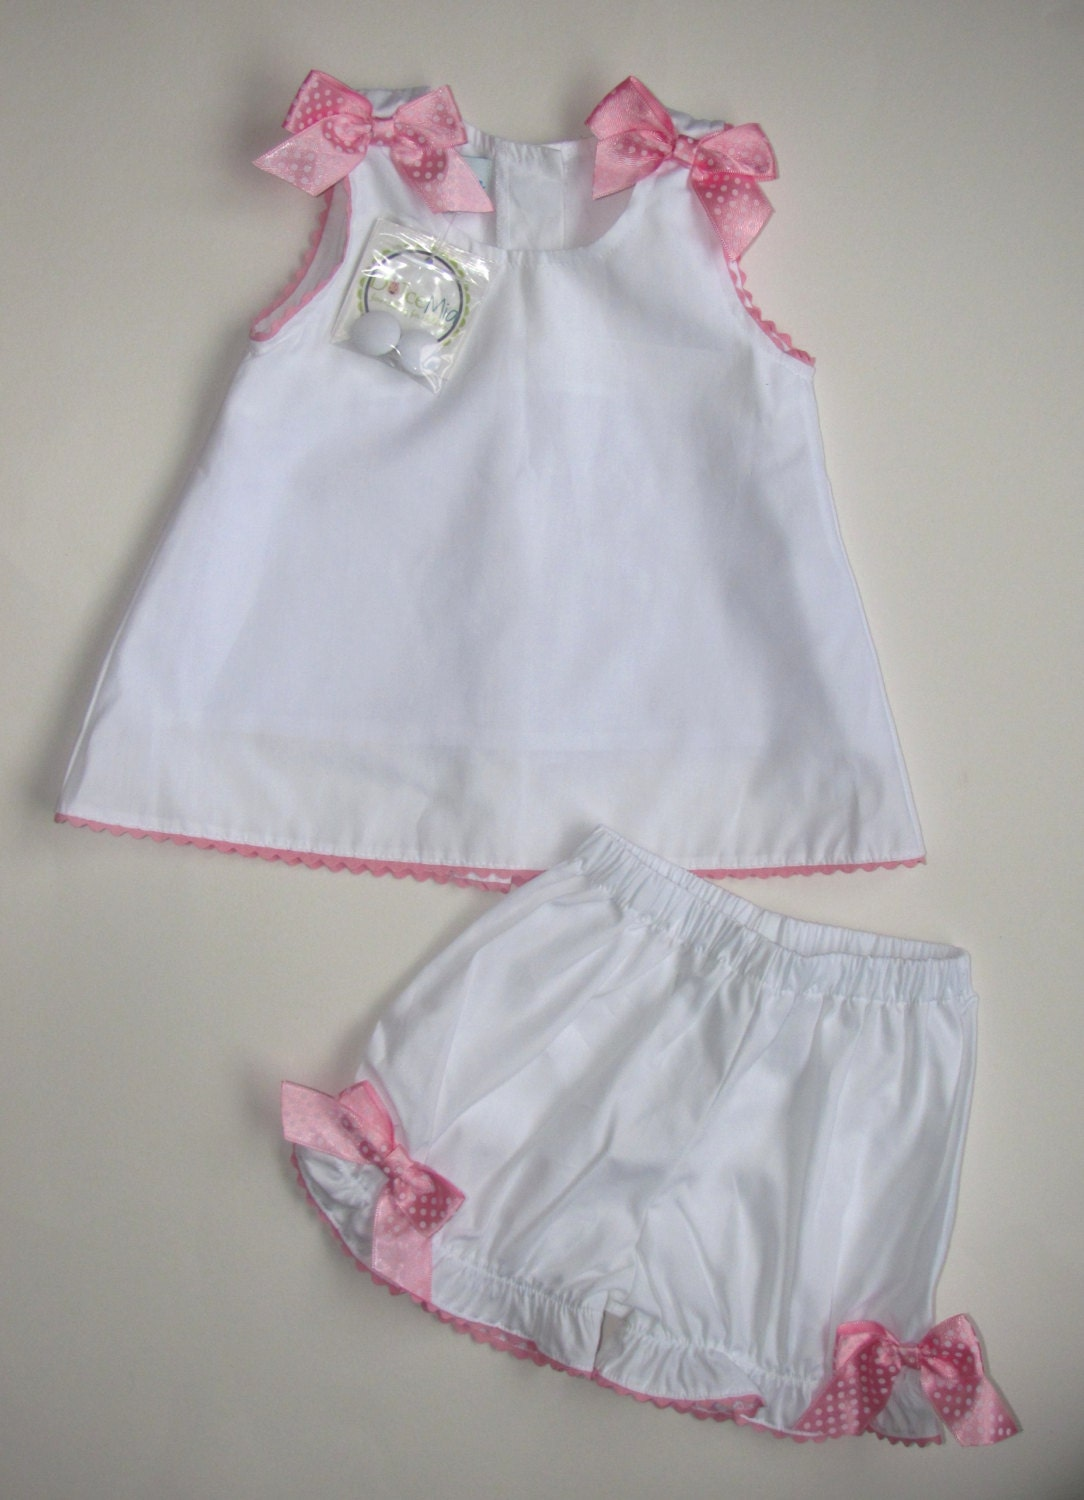 Personalized baby girl outfit clothes bloomer and blouse